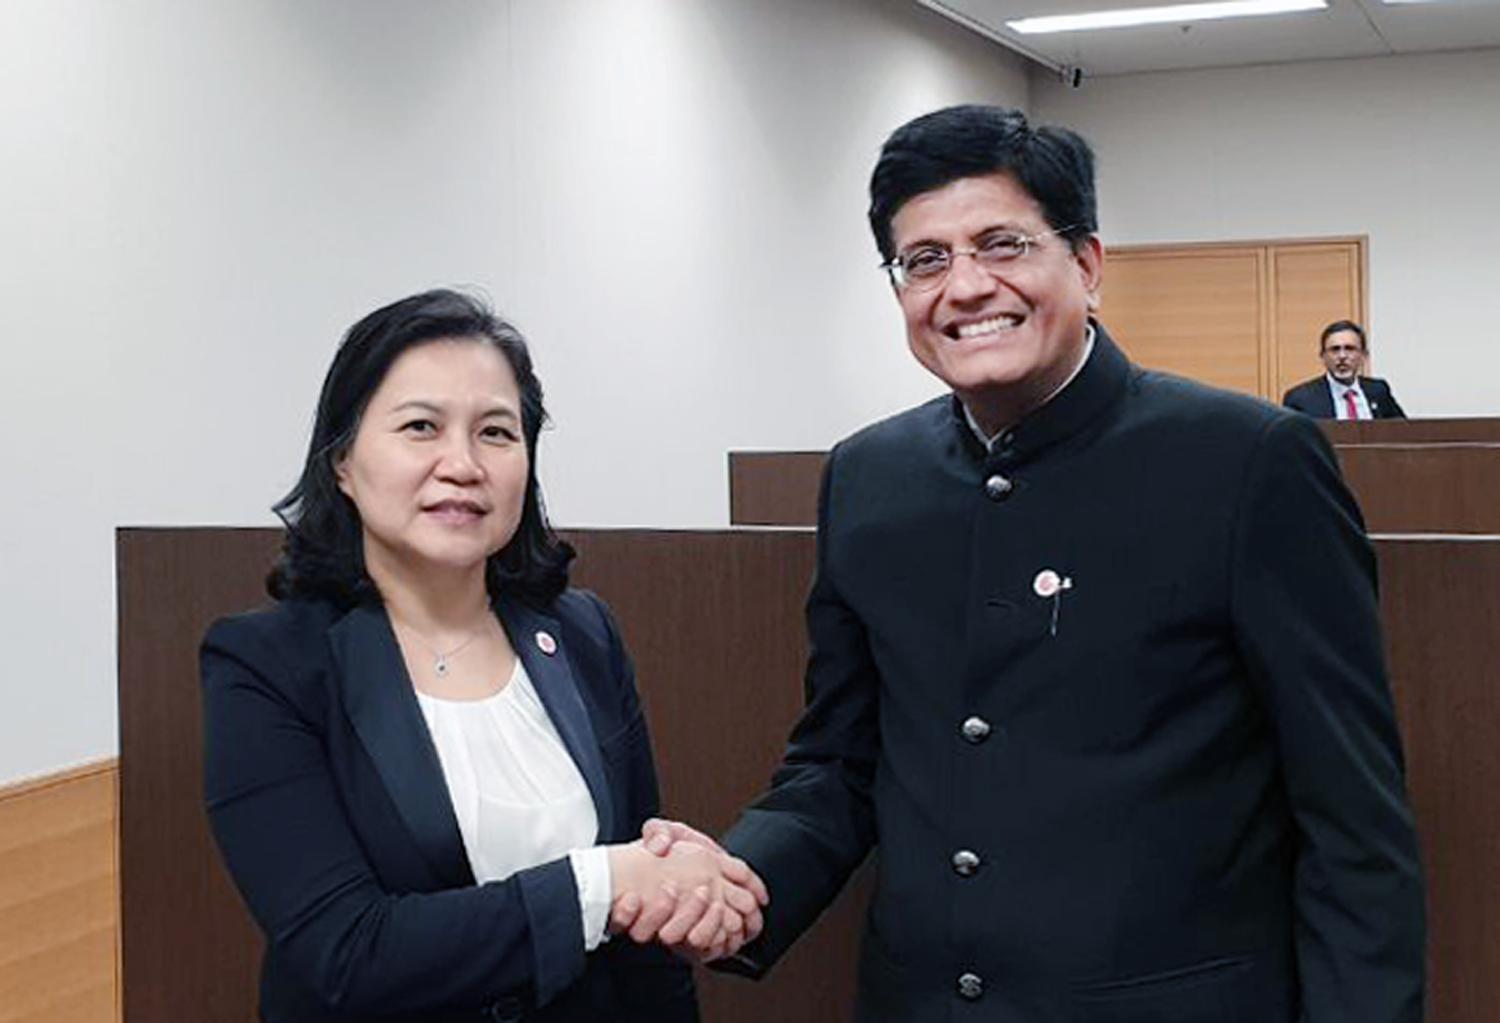 Trade Minister Yoo meets with India's Commerce Minister in Japan Image 0